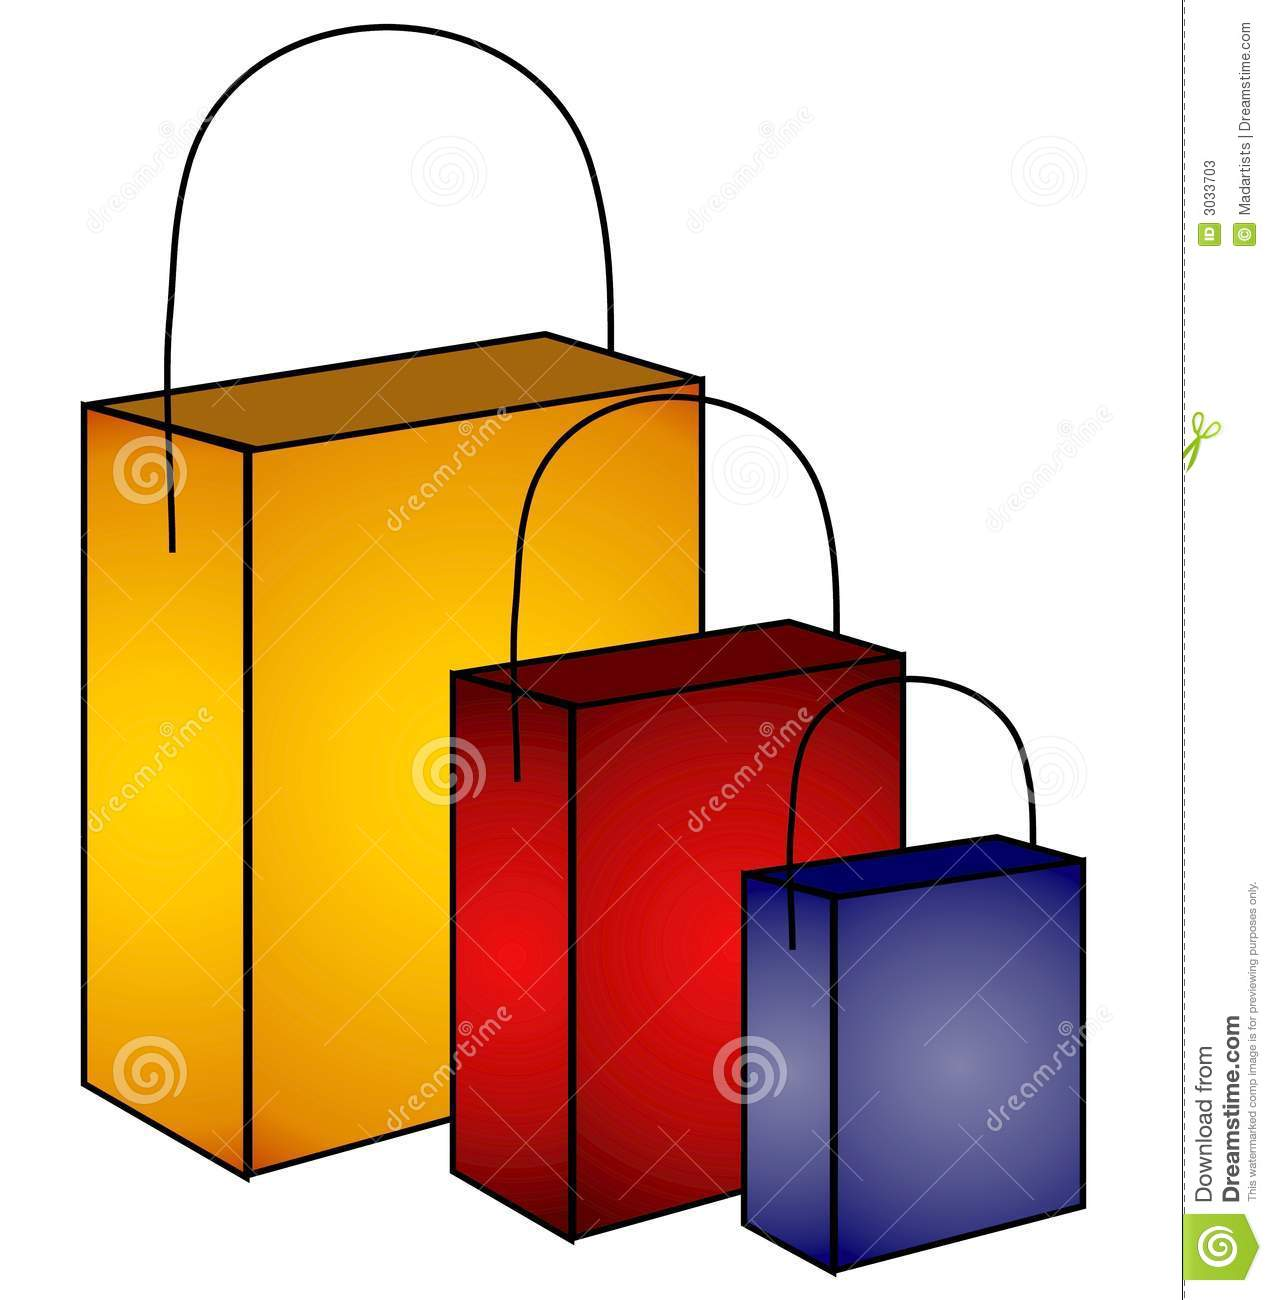 Mystery Shopping Bags Clip Art Stock Photos - Image: 3033703